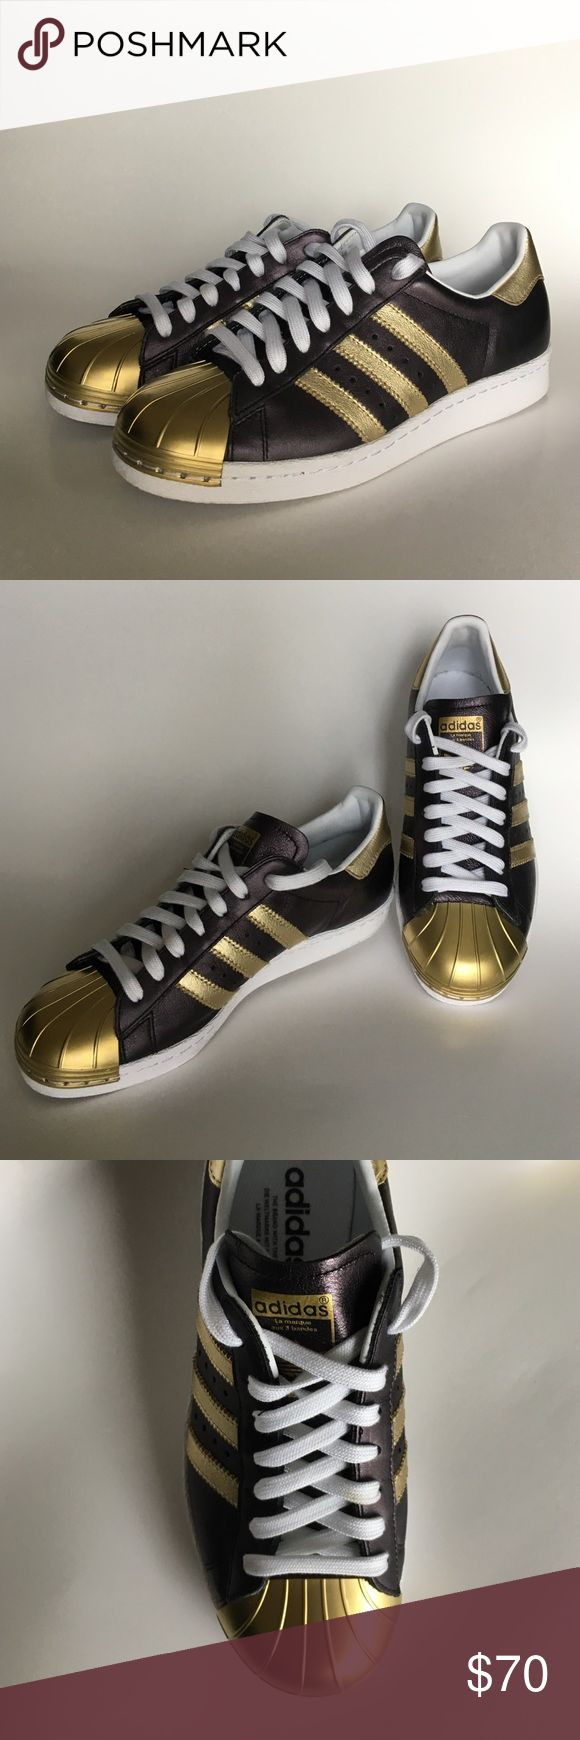 CUSTOM Adidas Allstars for Women CUSTOM MADE & BARELY WORN ADIDAS ALLSTARS. Make an offer. Size 6.5 but fits like a US 8. Adidas Shoes Sneakers